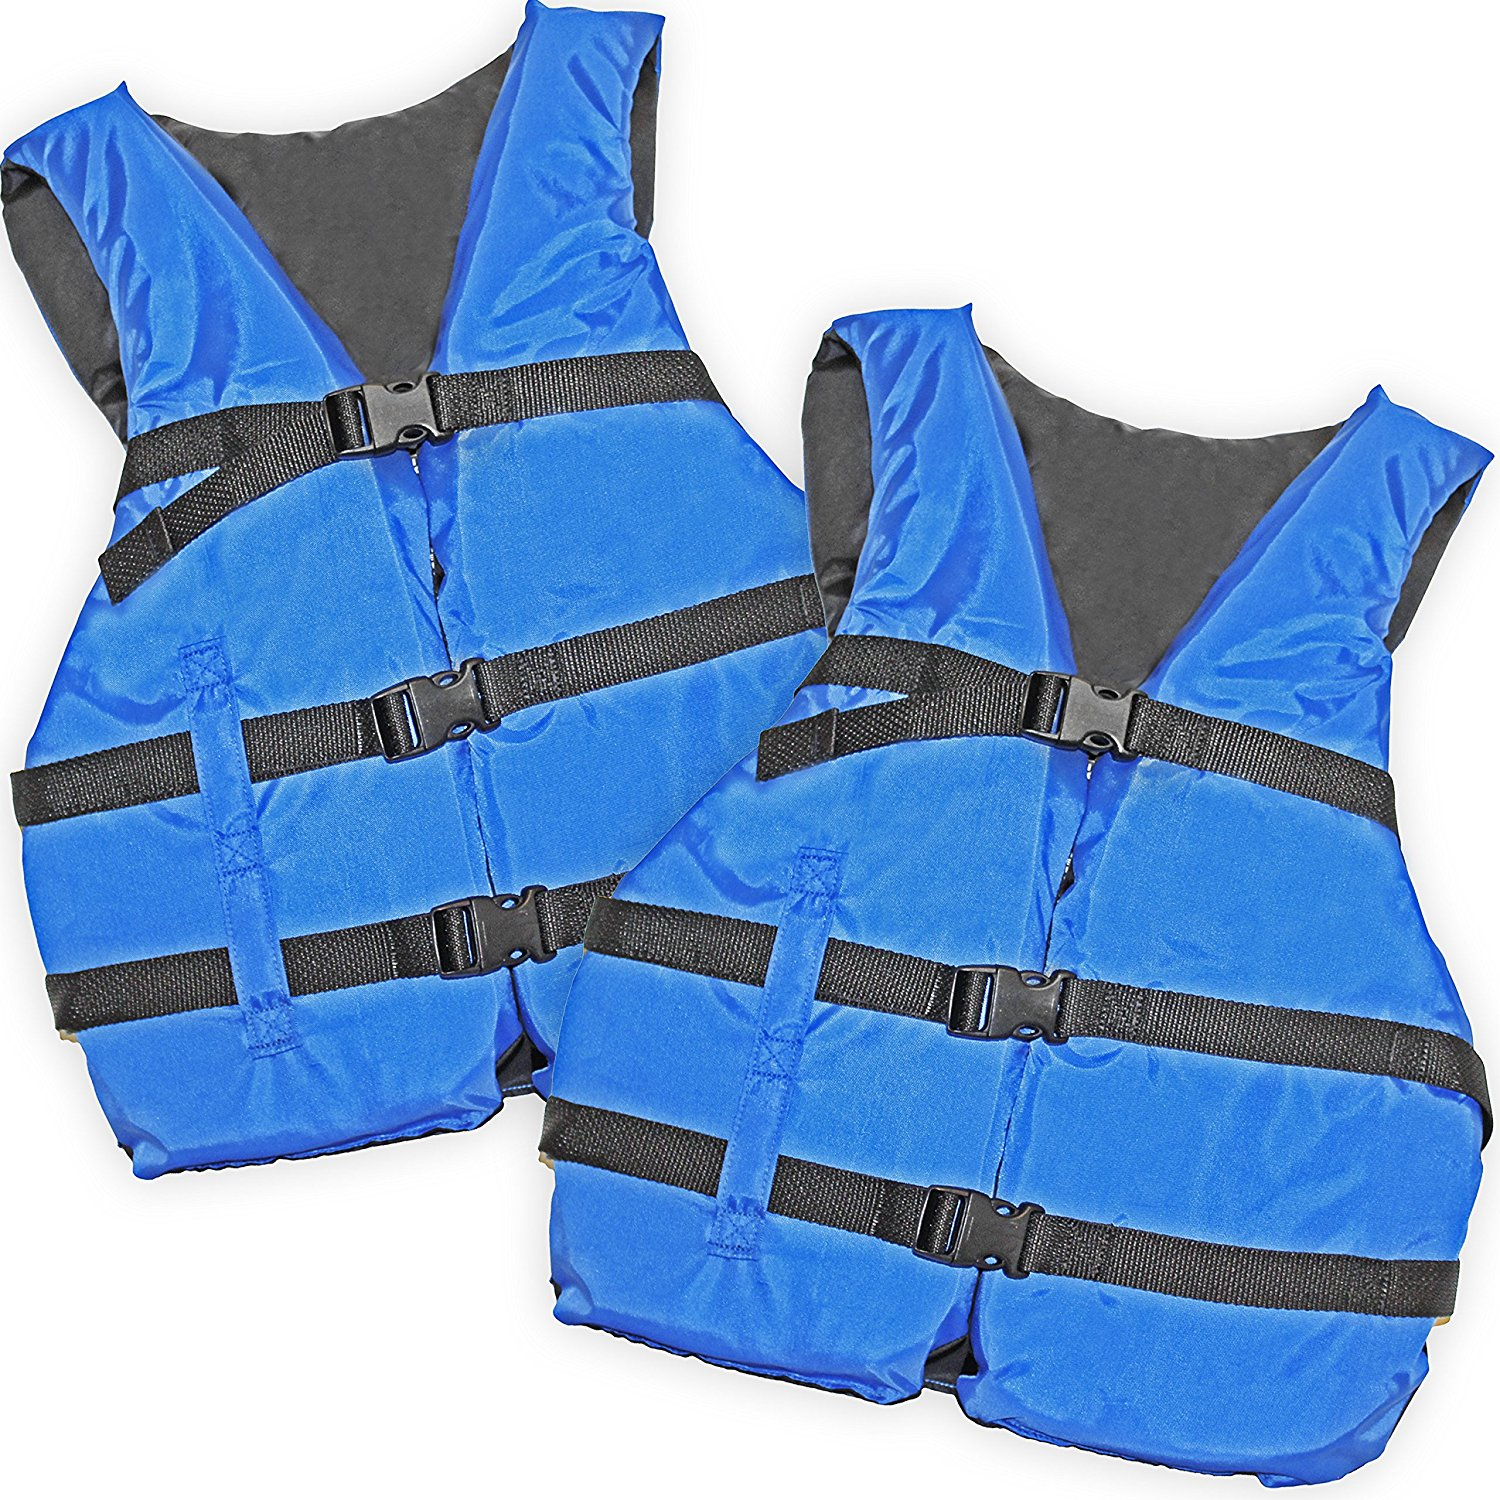 2 Pack Basic Coast Guard Approved Life Jacket (Blue), Designed to fit any person over 90lbs. By Hardcore Water Sports by